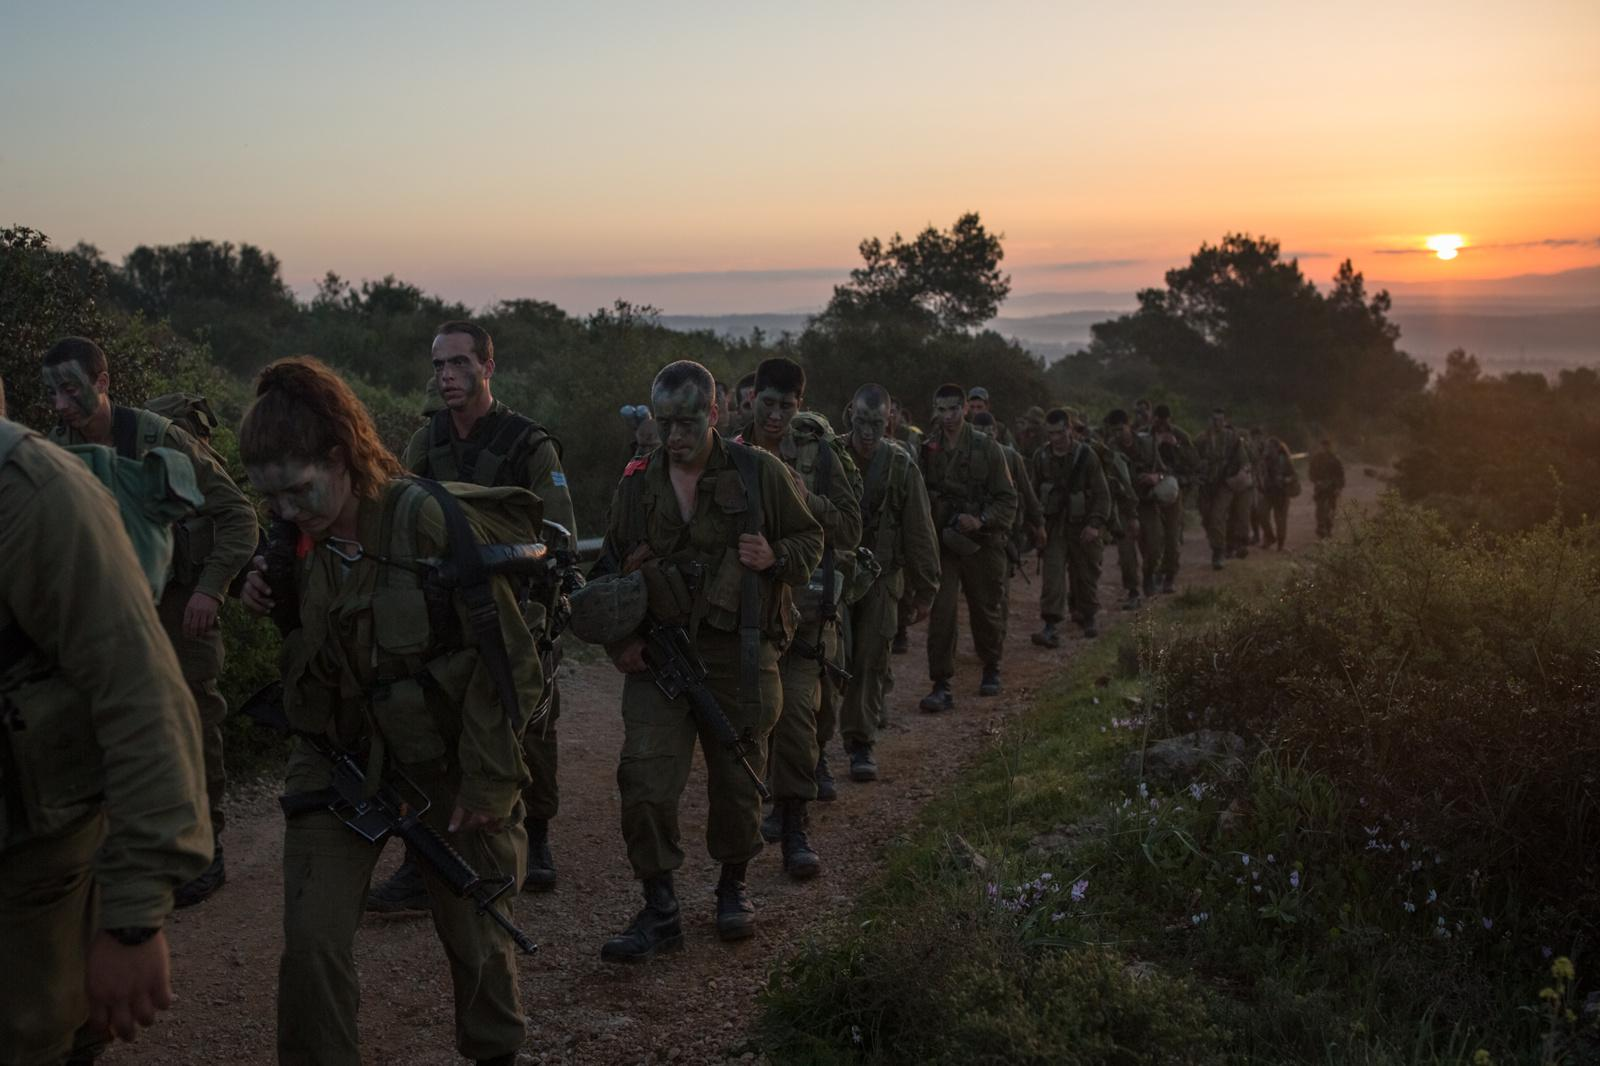 BINYAMINA, ISRAEL - MARCH 08, 2017: Soldiers from the Artillery Corps take part in a baret march at the end of their basic army training on March 08, 2017, near the Northern town of Binyamina, Israel. Around 600 soldiers participated in the march of around 25km, that lasted from midnight until the early morning hours.